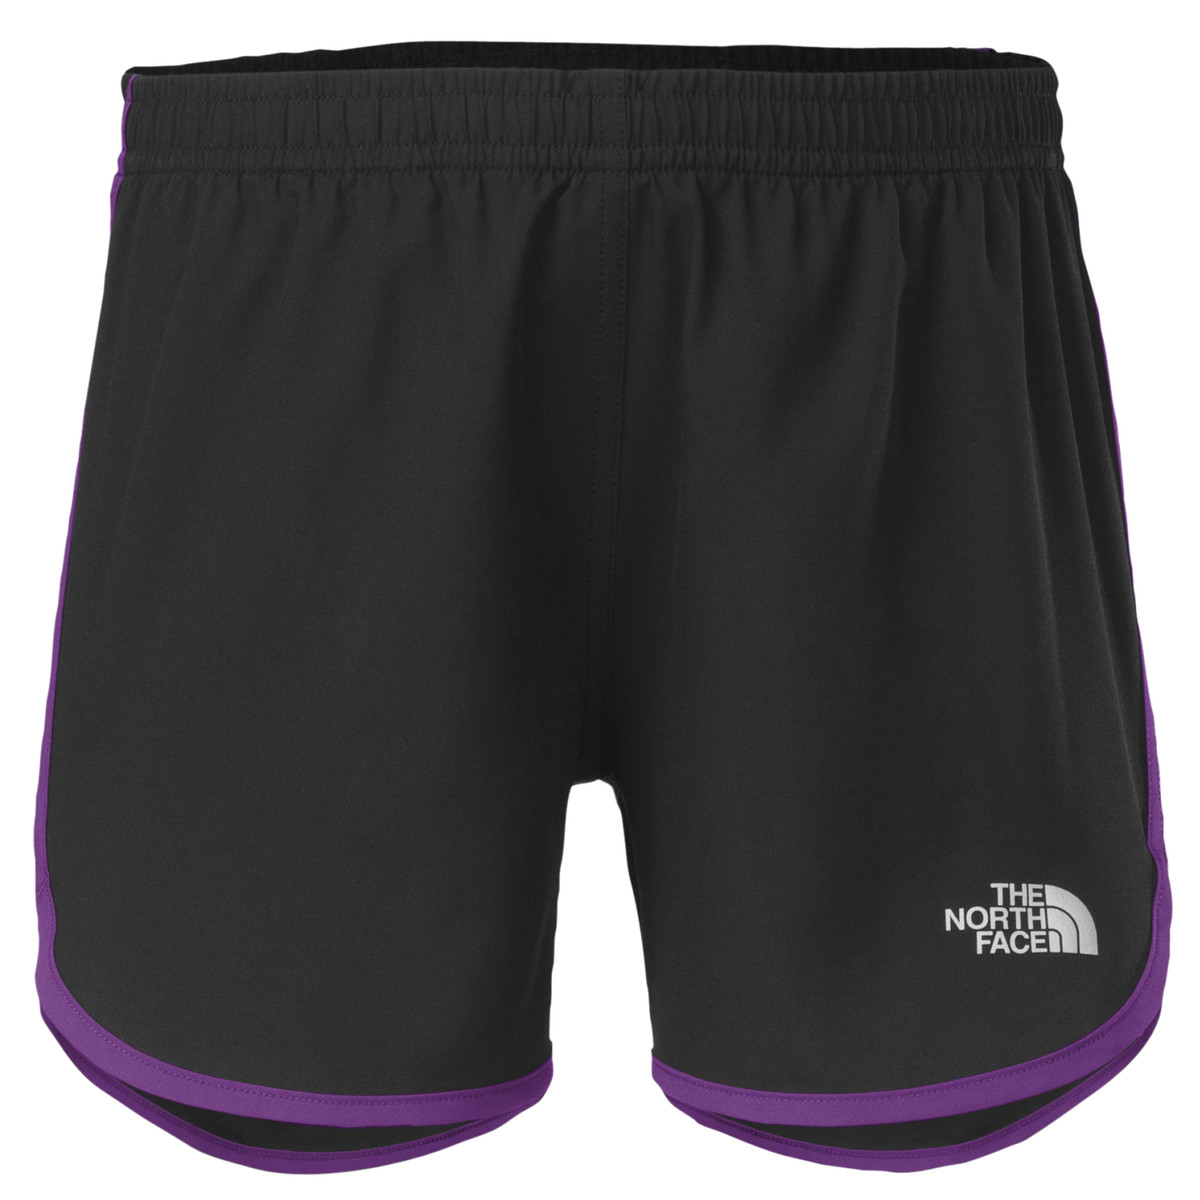 The North Face Moksha Performance Shorts